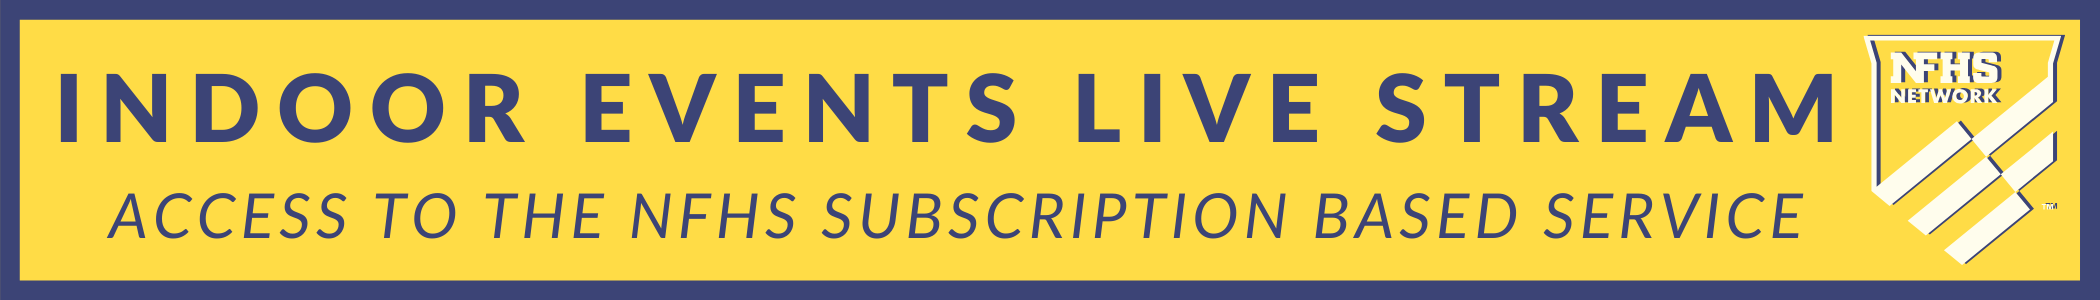 INDOOR EVENTS LIVE STREAM - ACCESS TO THE NFHS SUBSCRIPTION BASED SERVICE